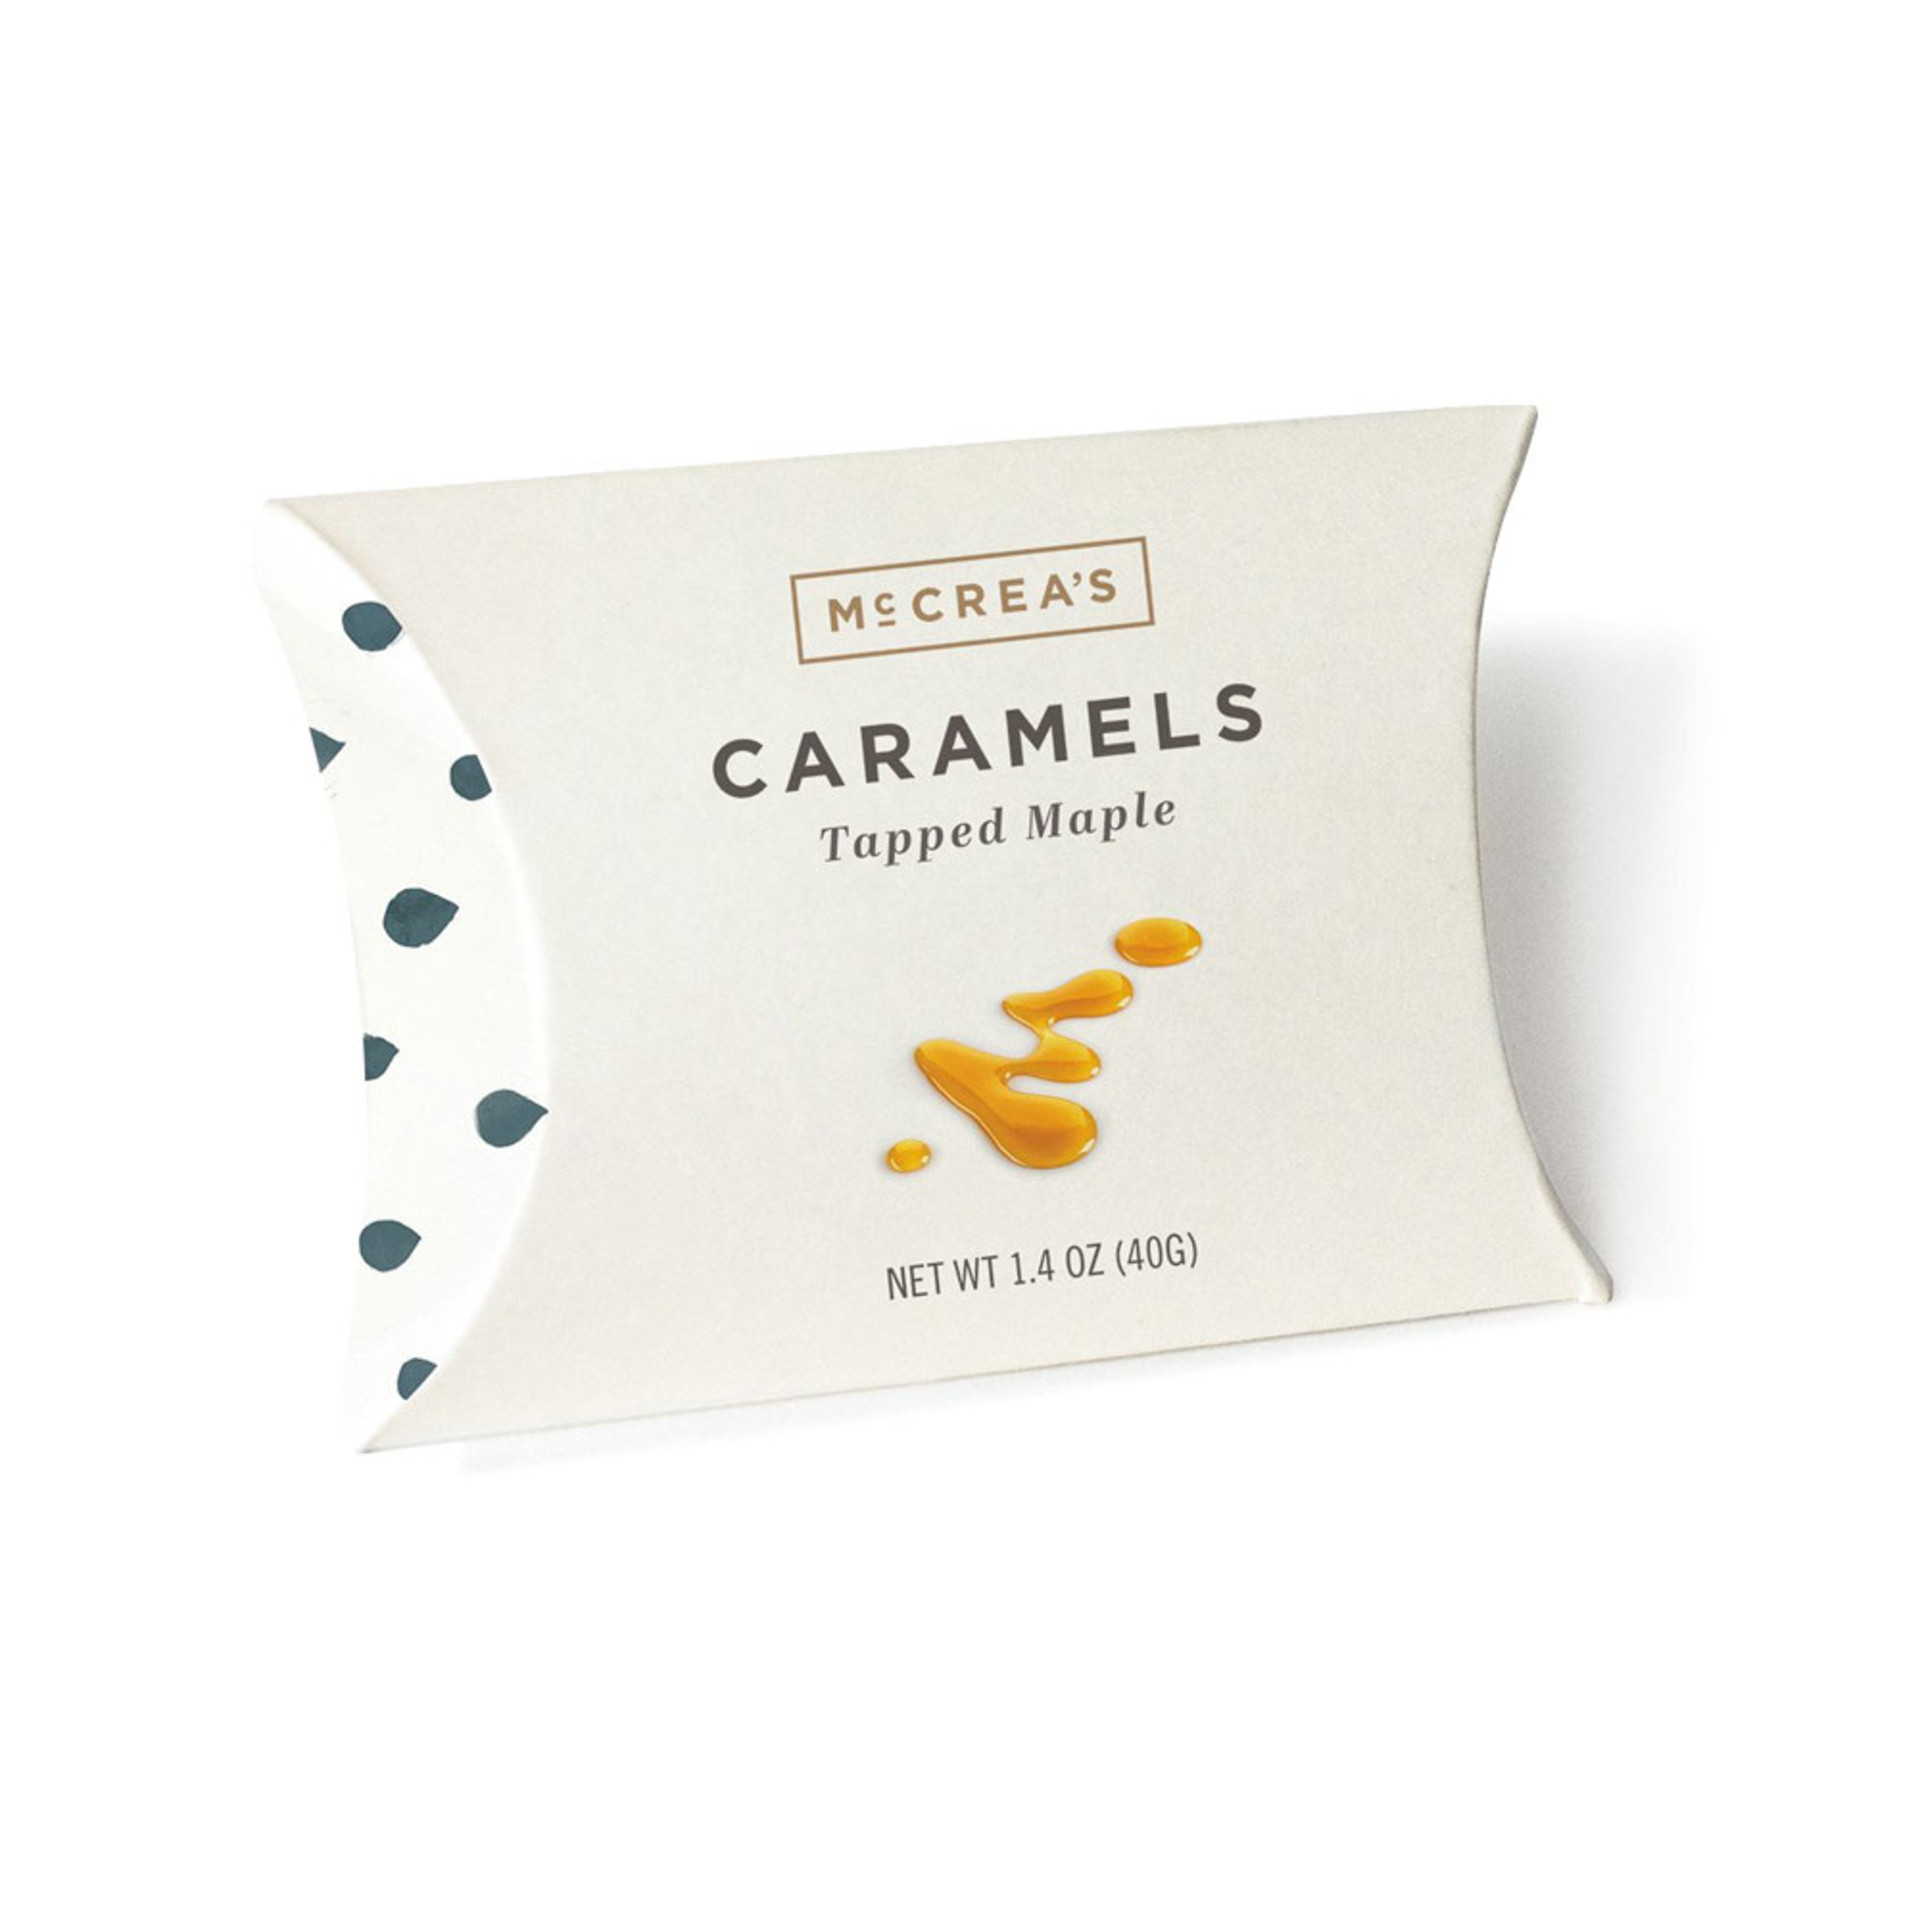 McCrea's Tapped Maple Caramels